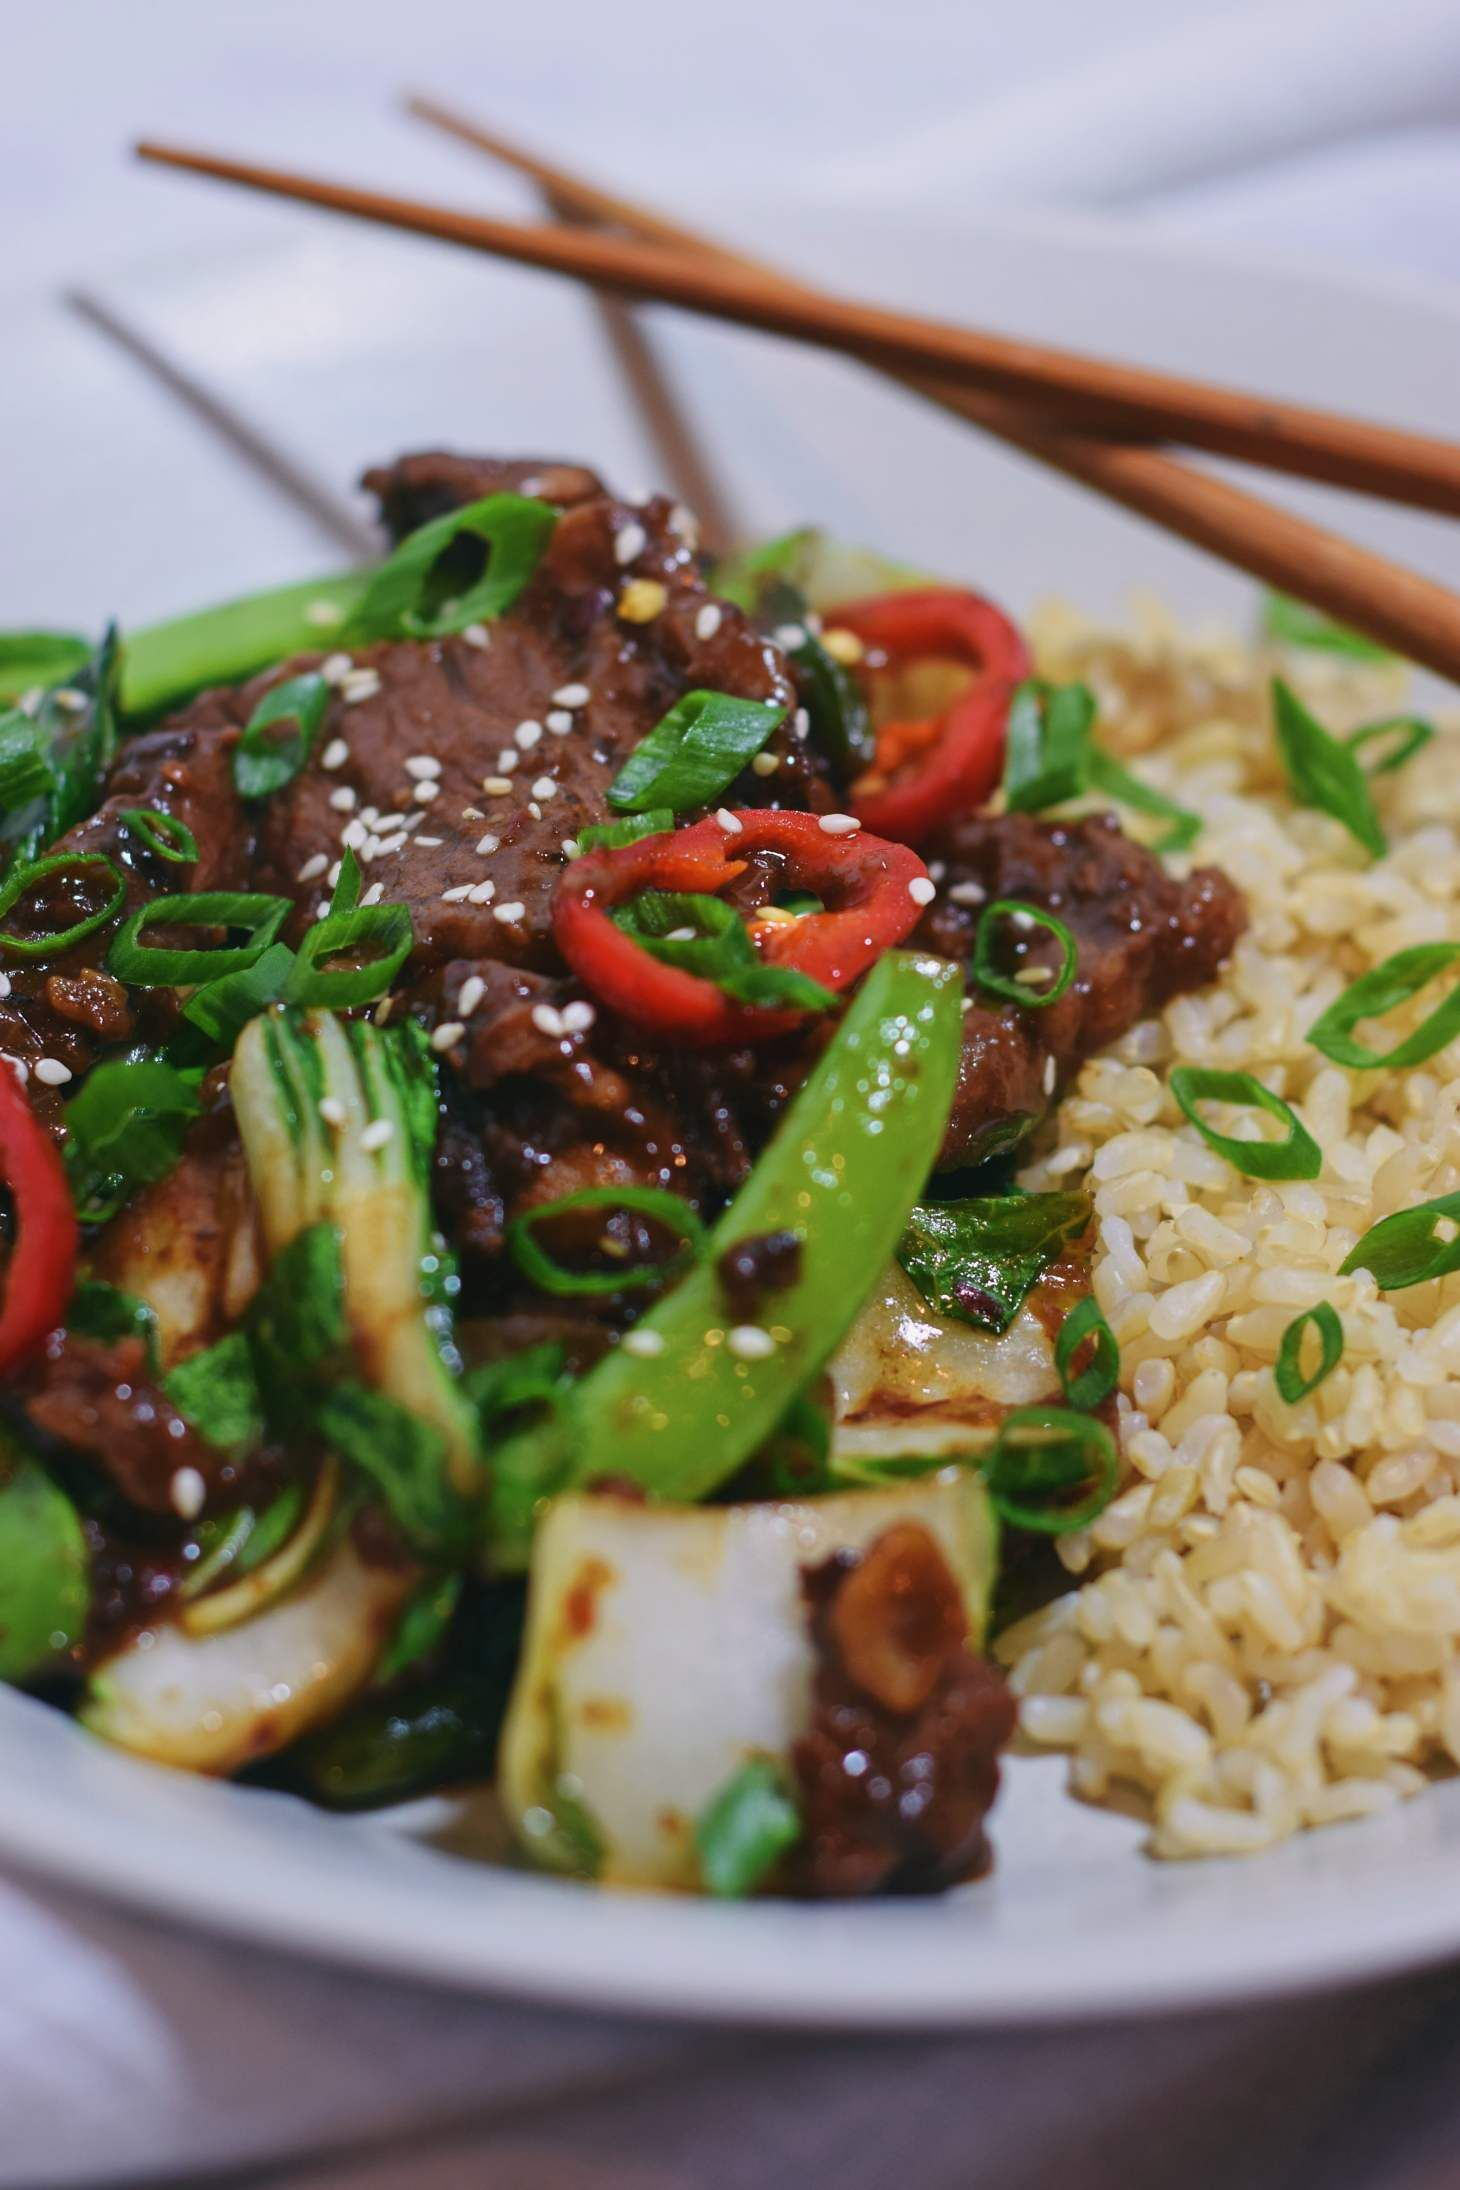 Asian Beef Stir Fry With Bok Choy The Migoni Kitchen Recipe Asian Beef Stir Fry Beef Stir Fry Garlic Beef